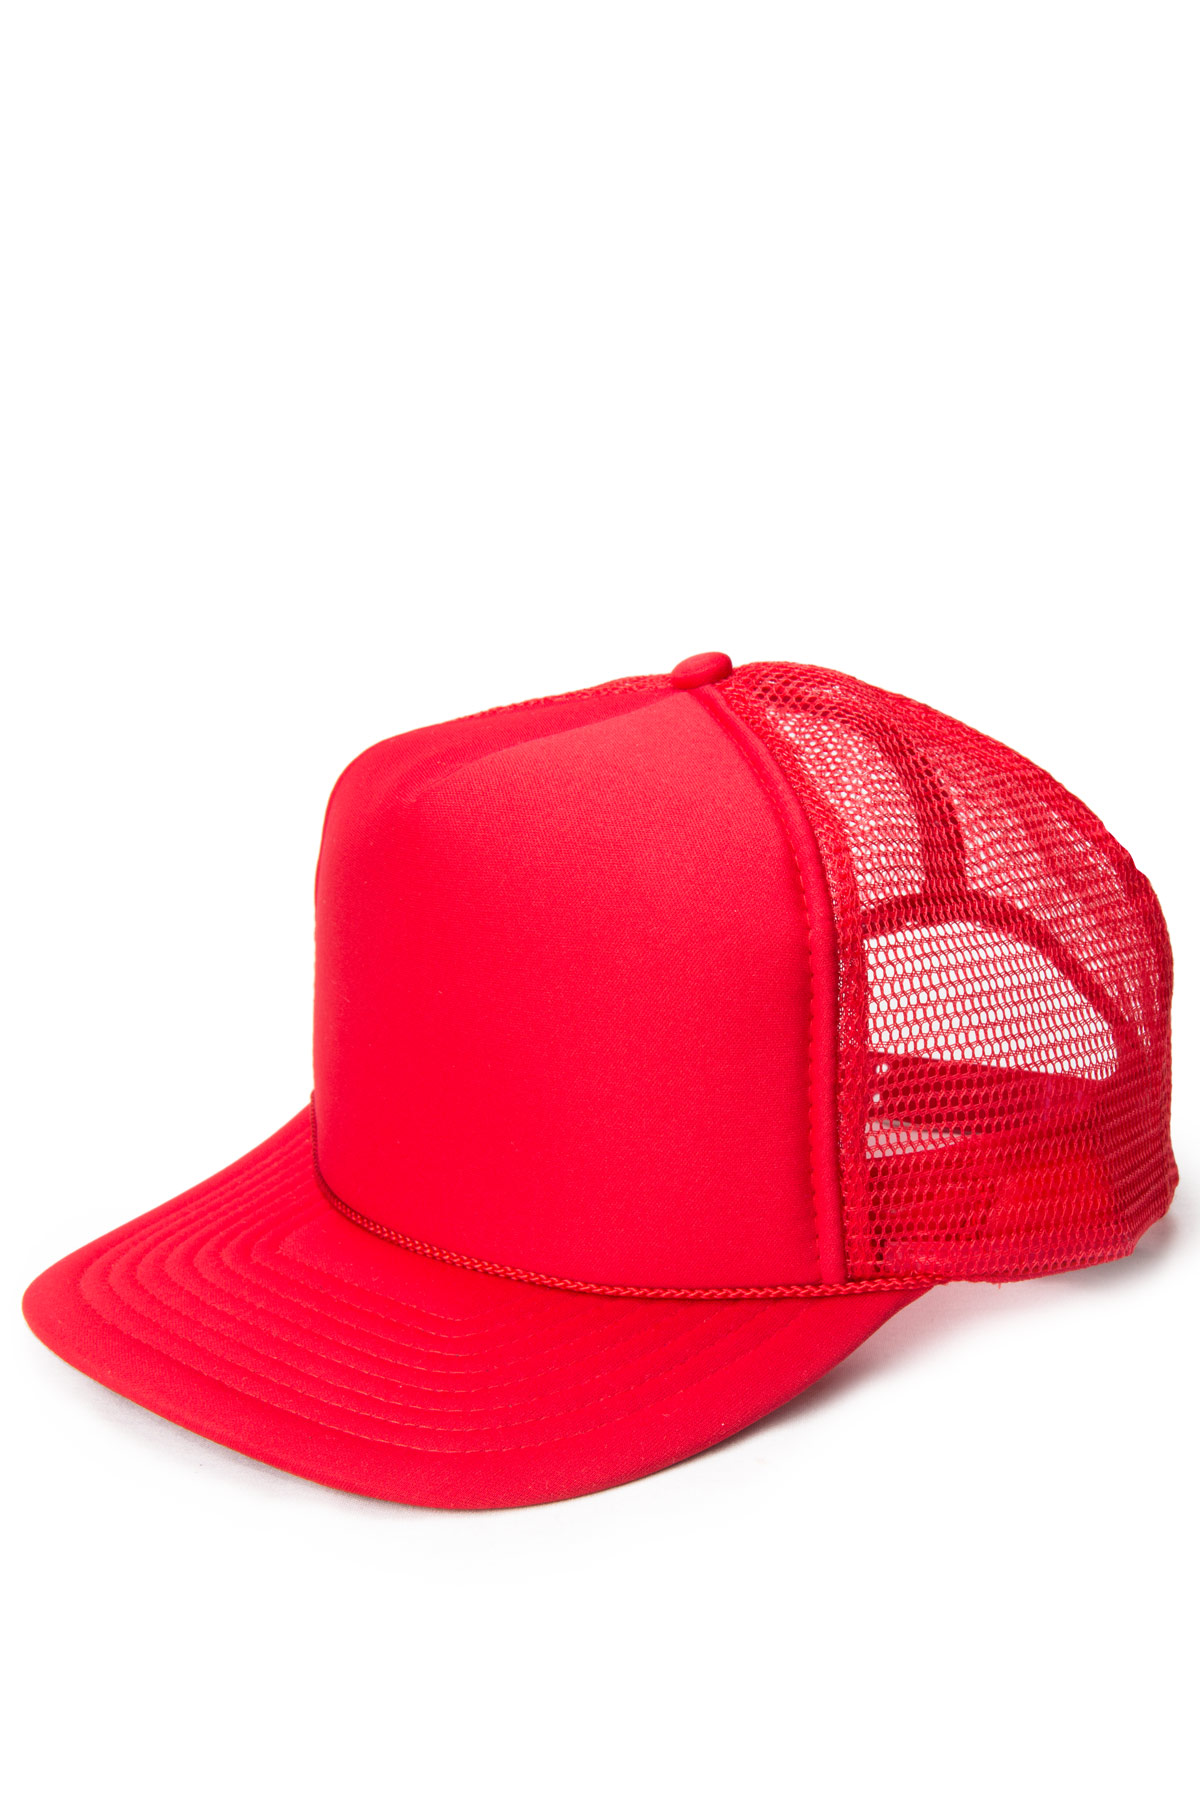 red mesh baseball hat